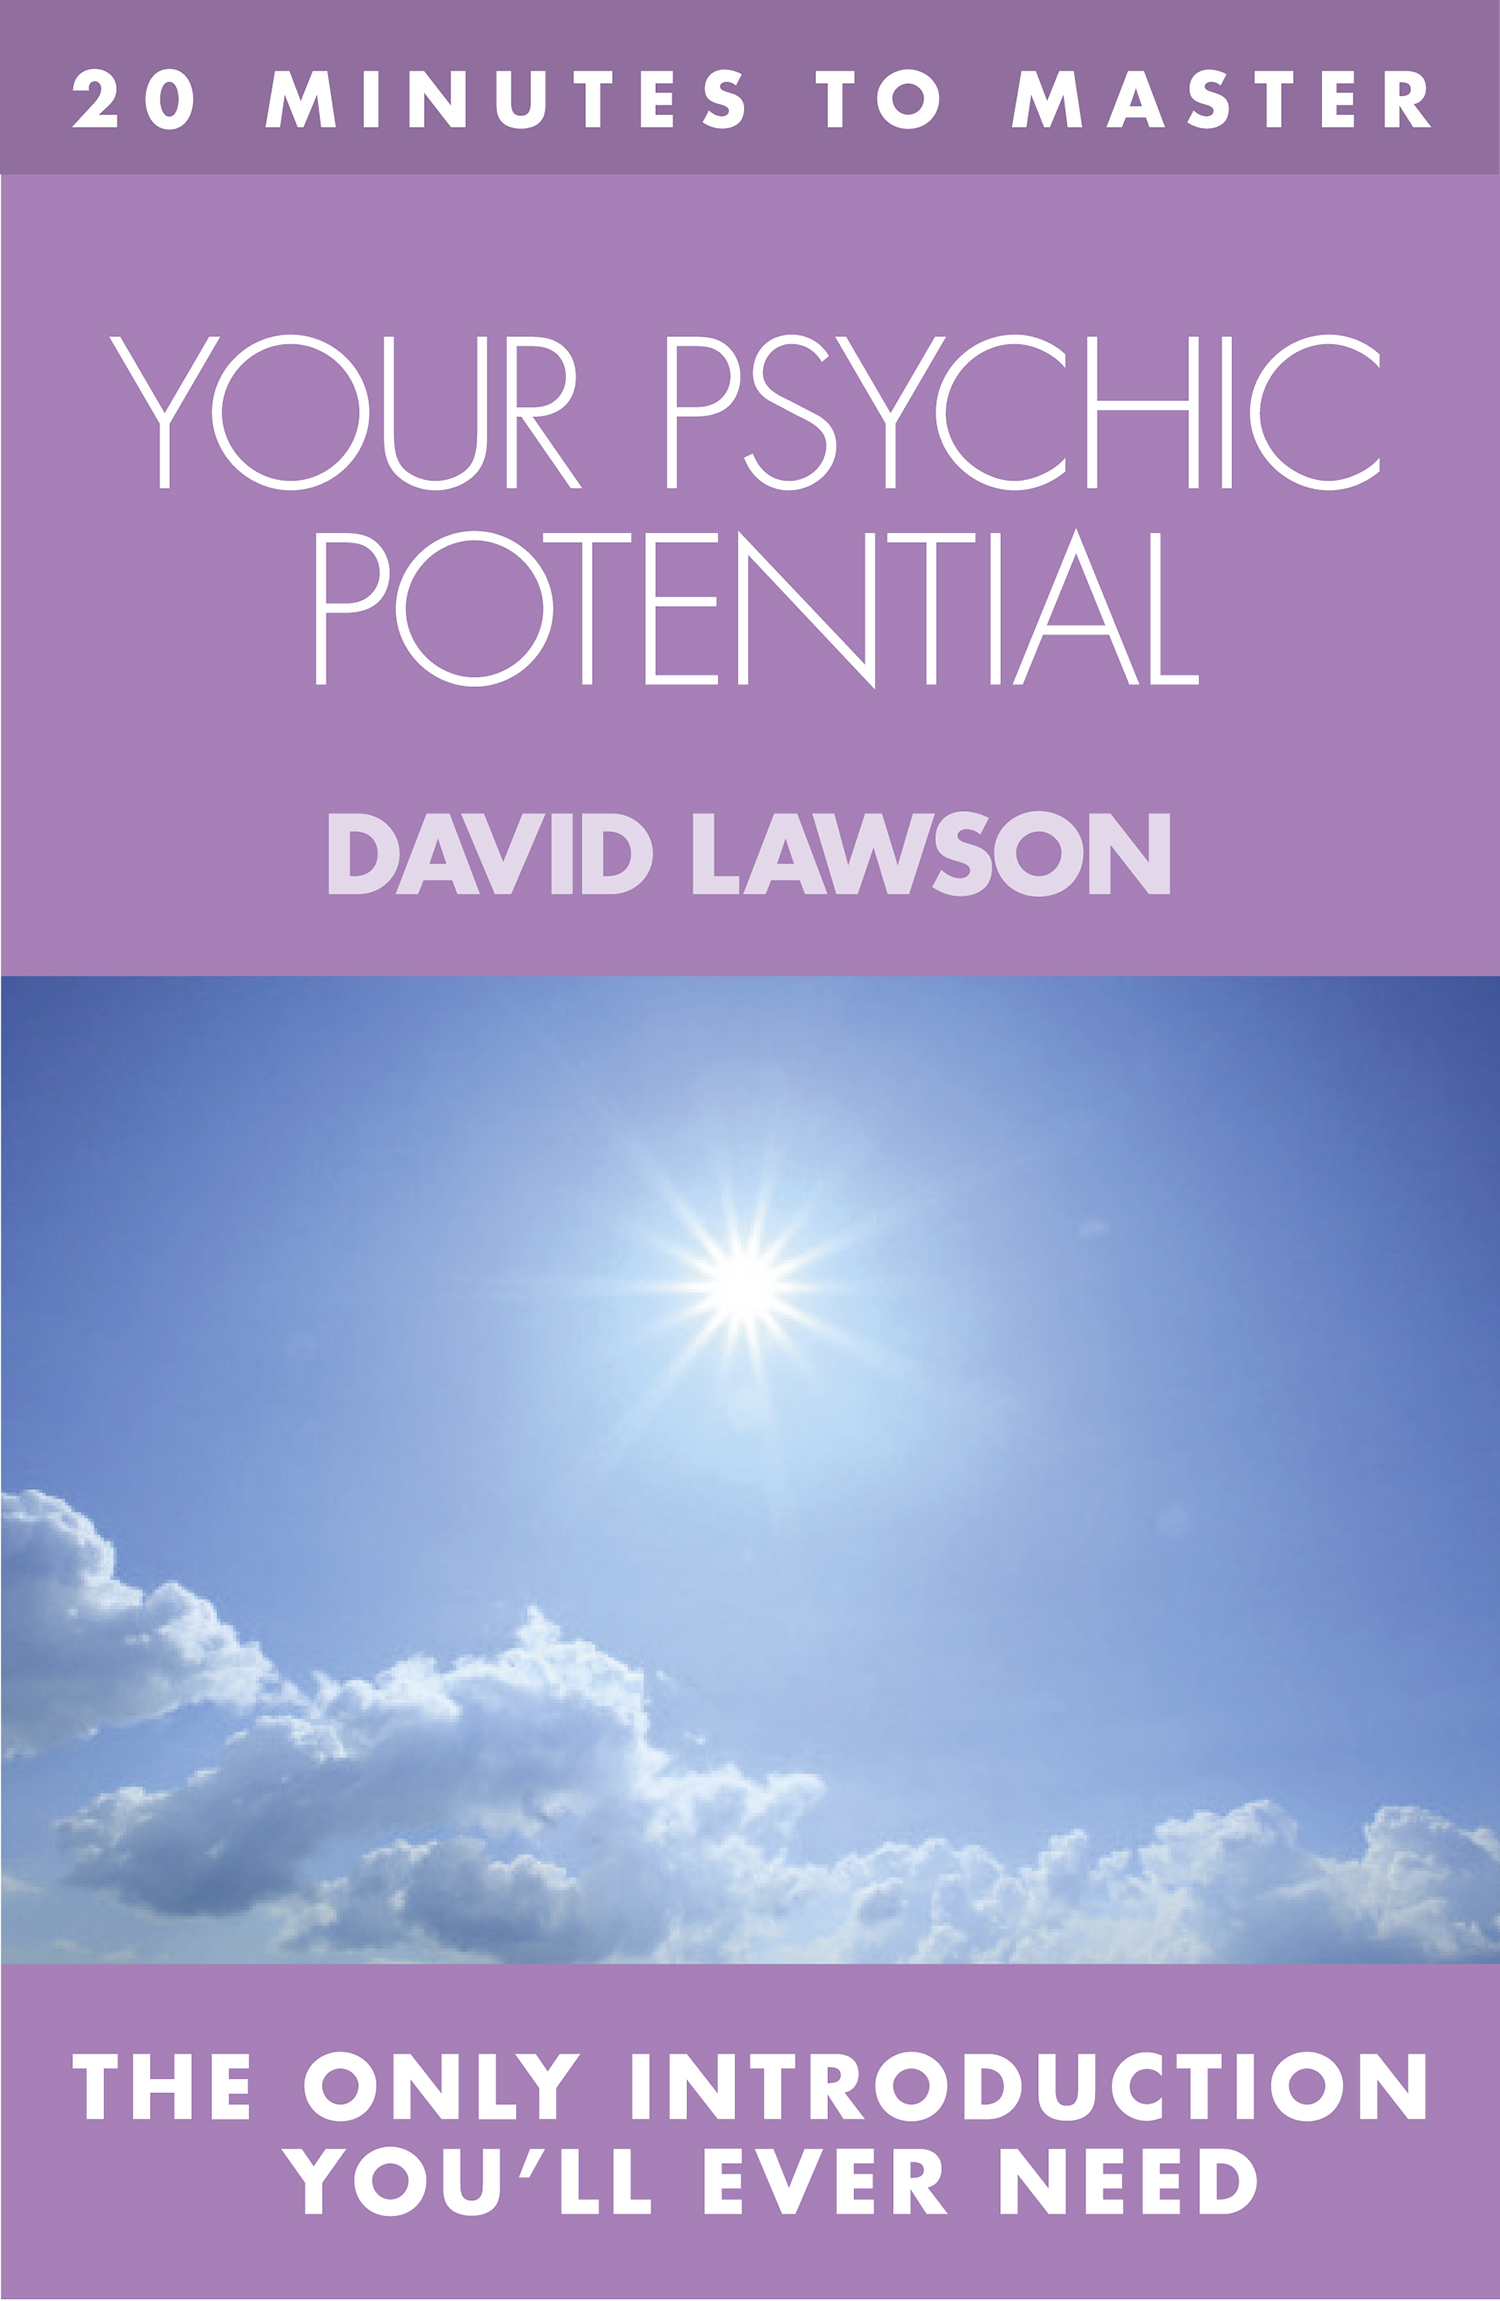 20 MINUTES TO MASTER ? YOUR PSYCHIC POTENTIAL